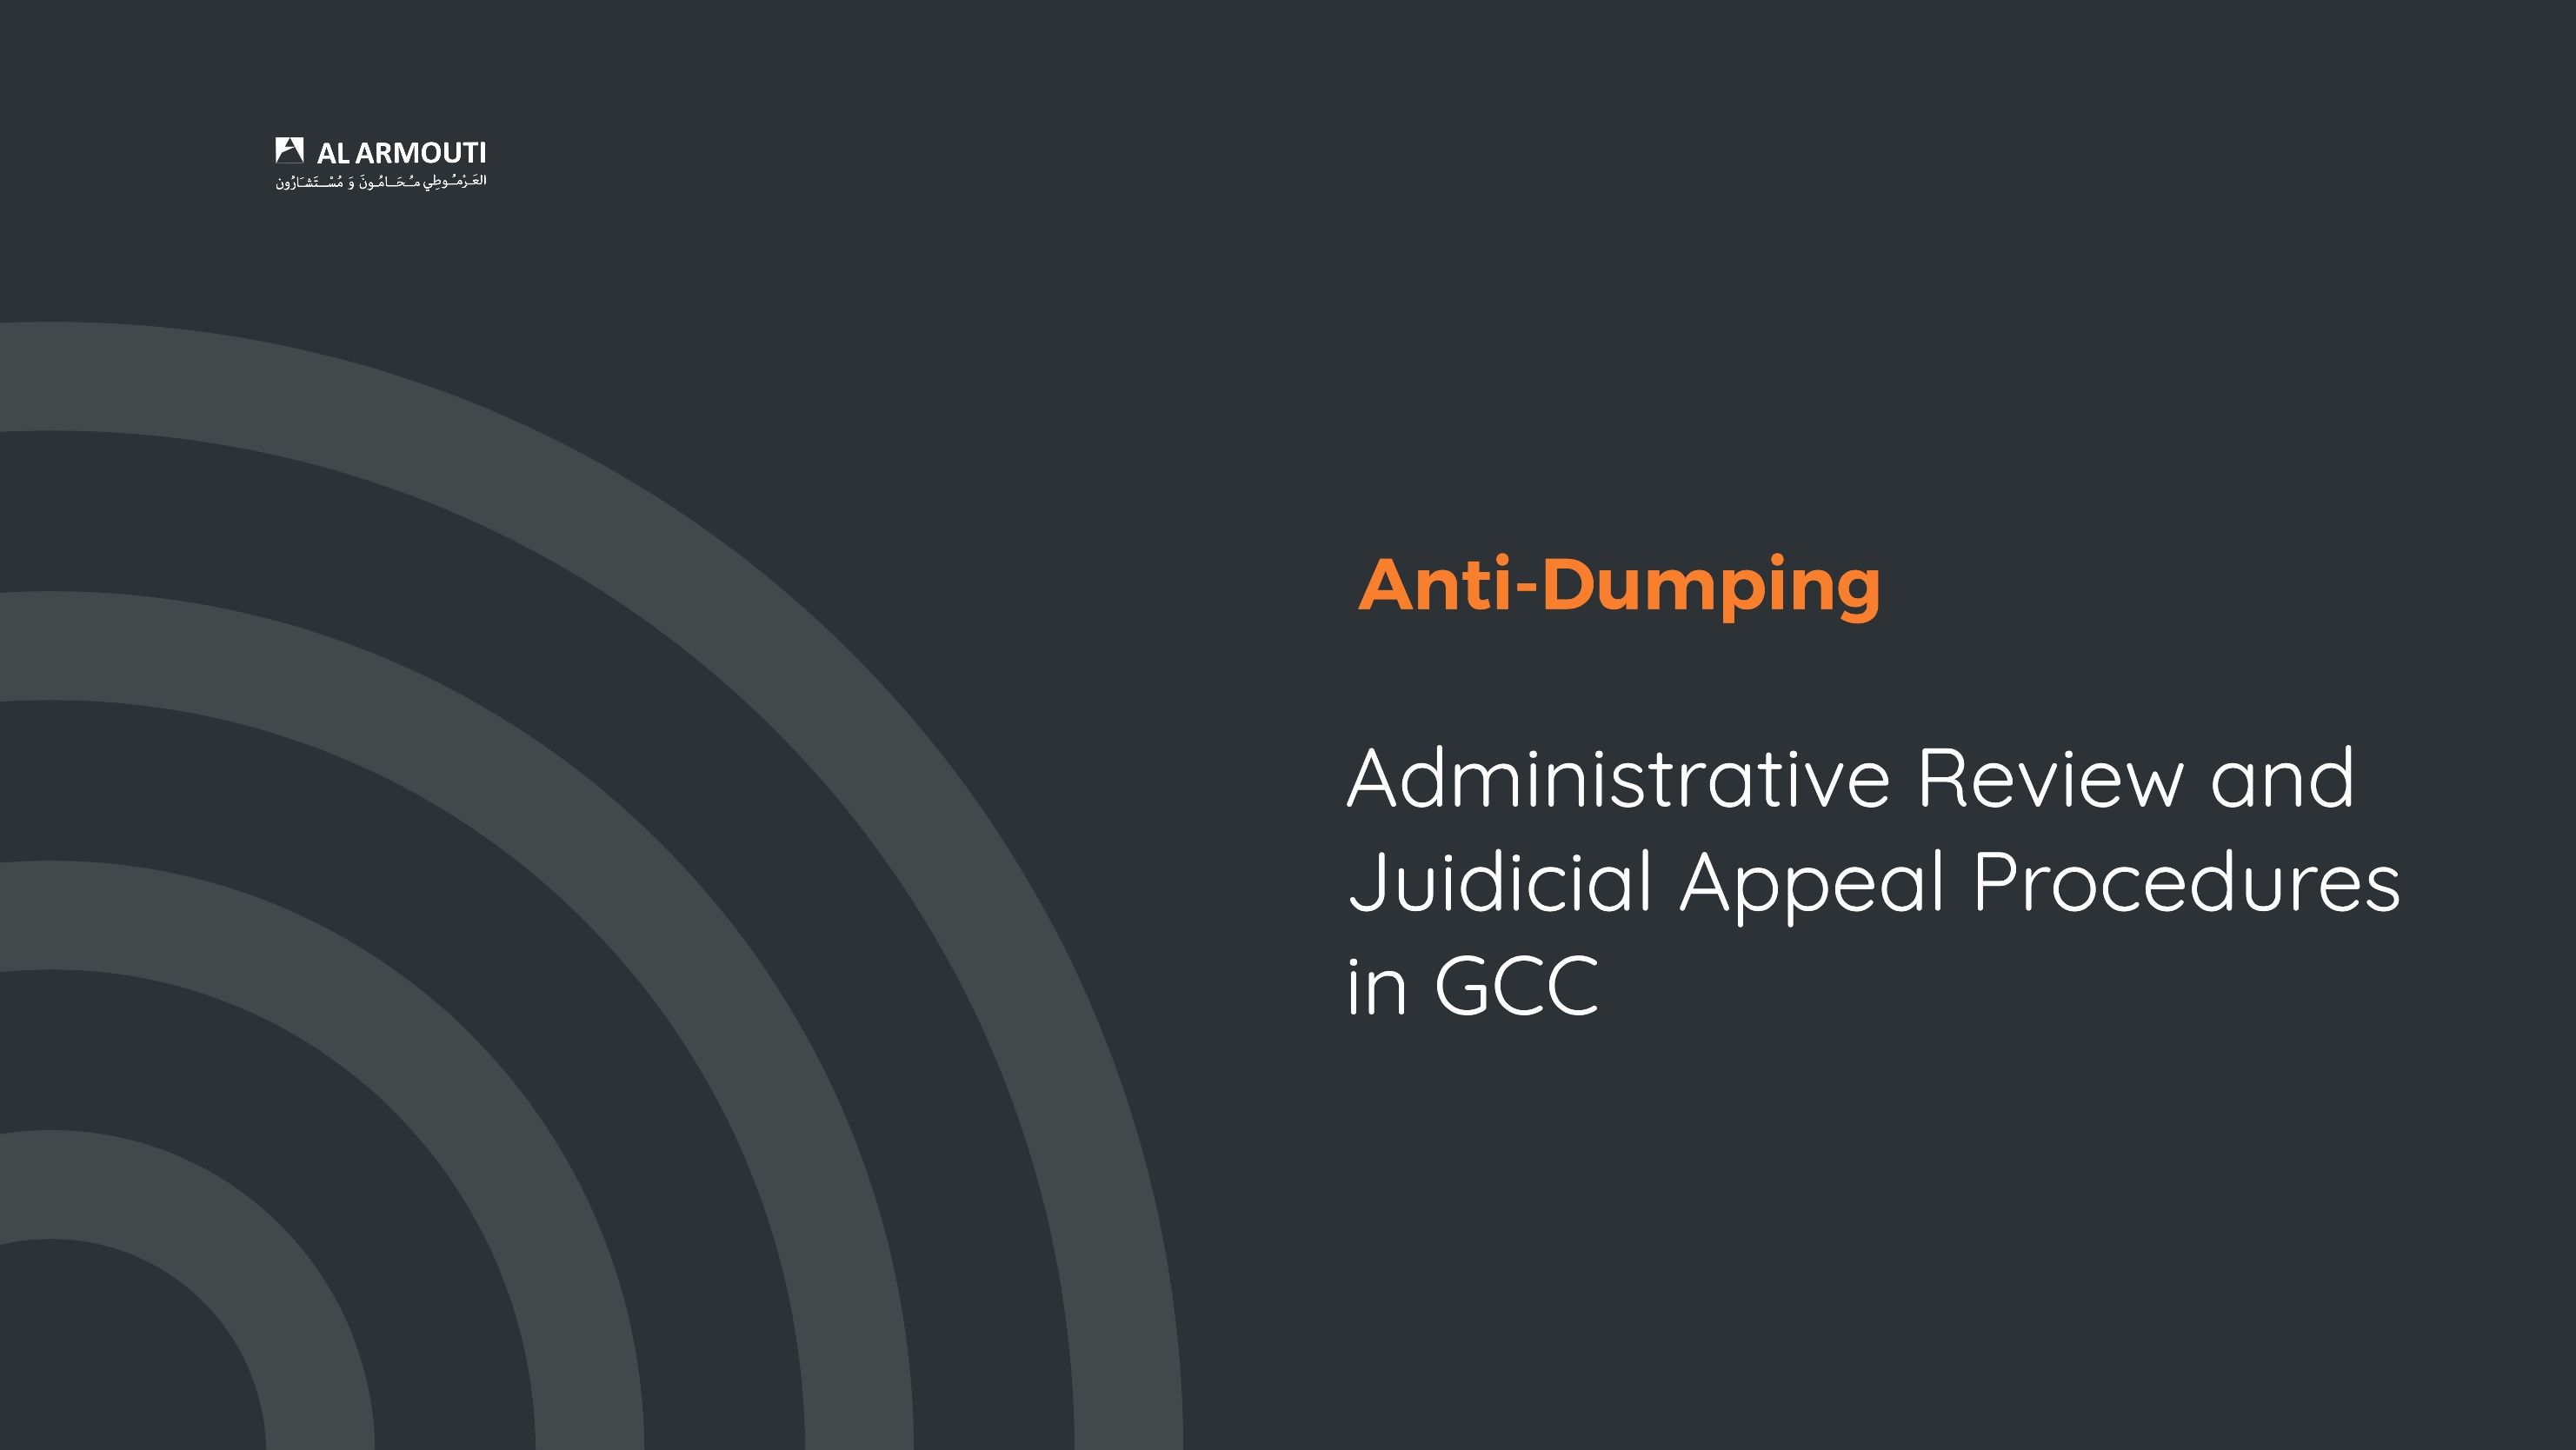 Anti-Dumping: Administrative Review and Judicial Appeal in GCC